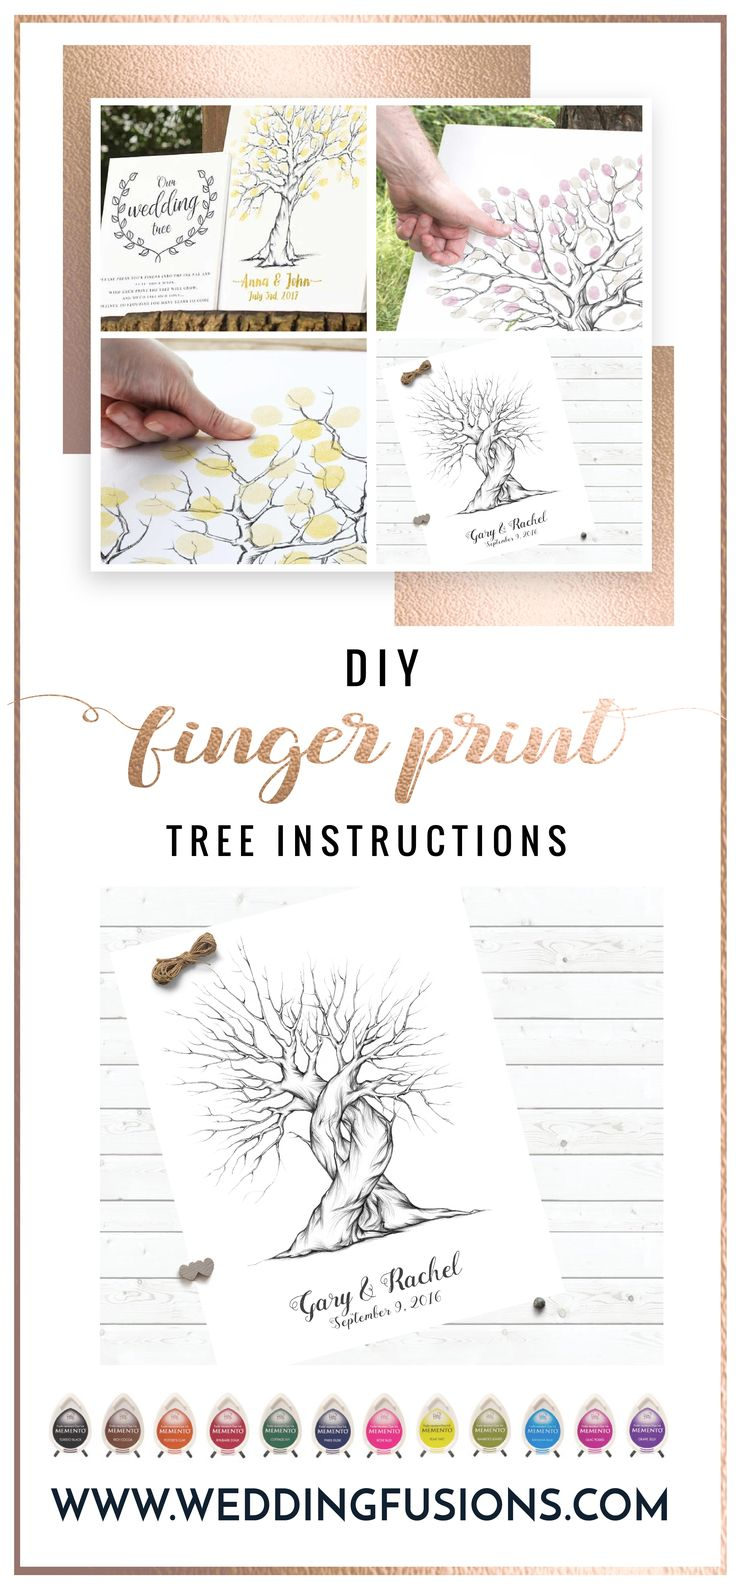 Check out our blog for some great DIY fingerprint tree tips and ideas!